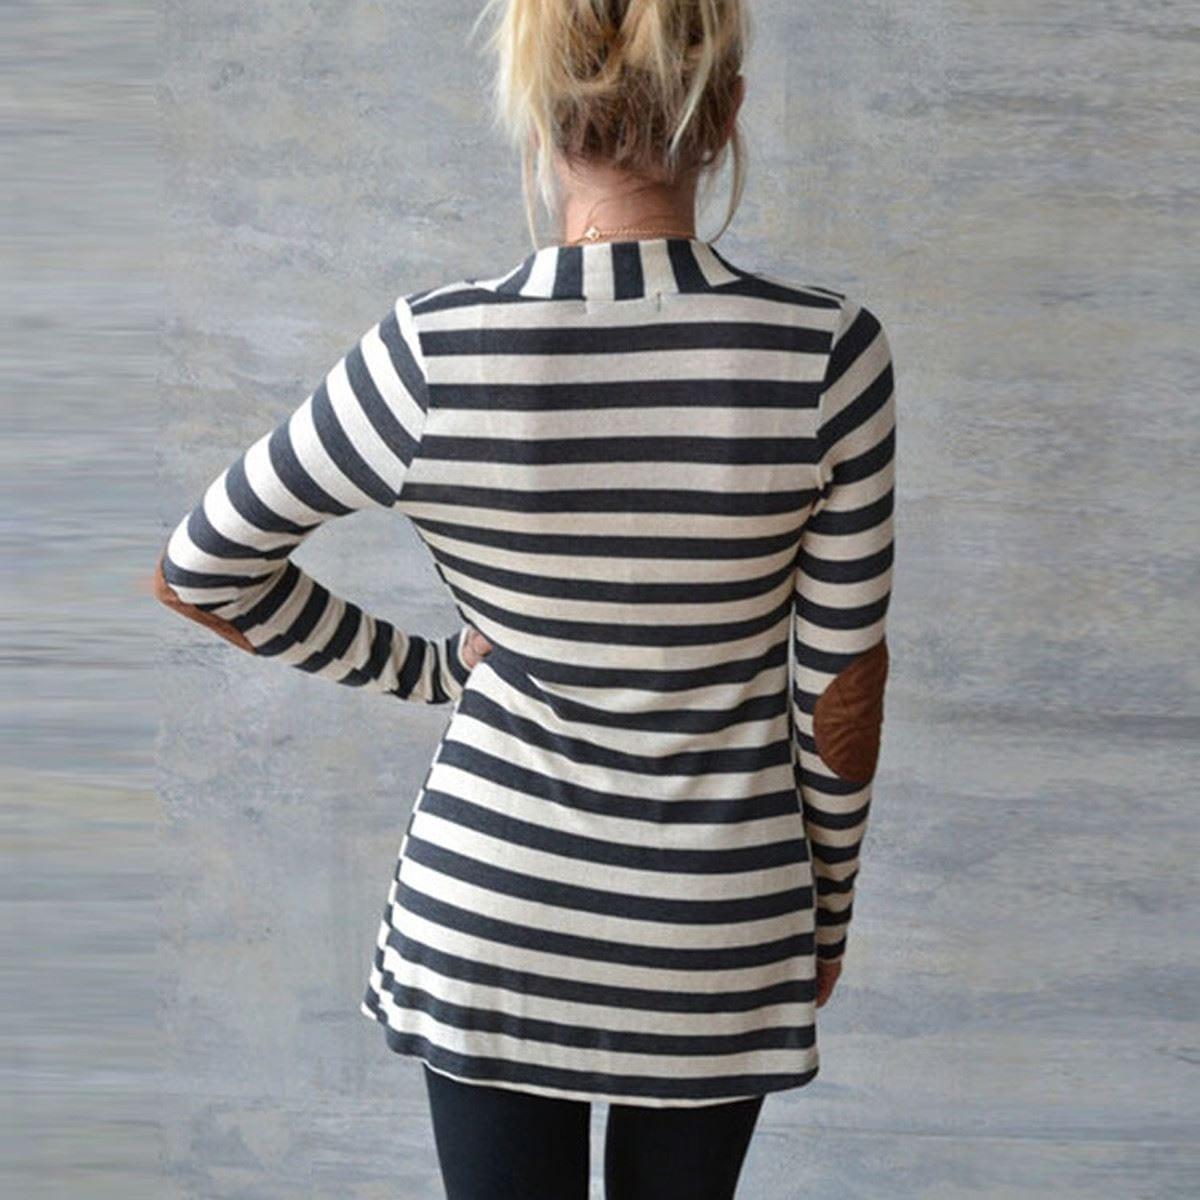 Long Sleeve Striped Printed Elbow Patchwork Knitted Sweater Cardigan